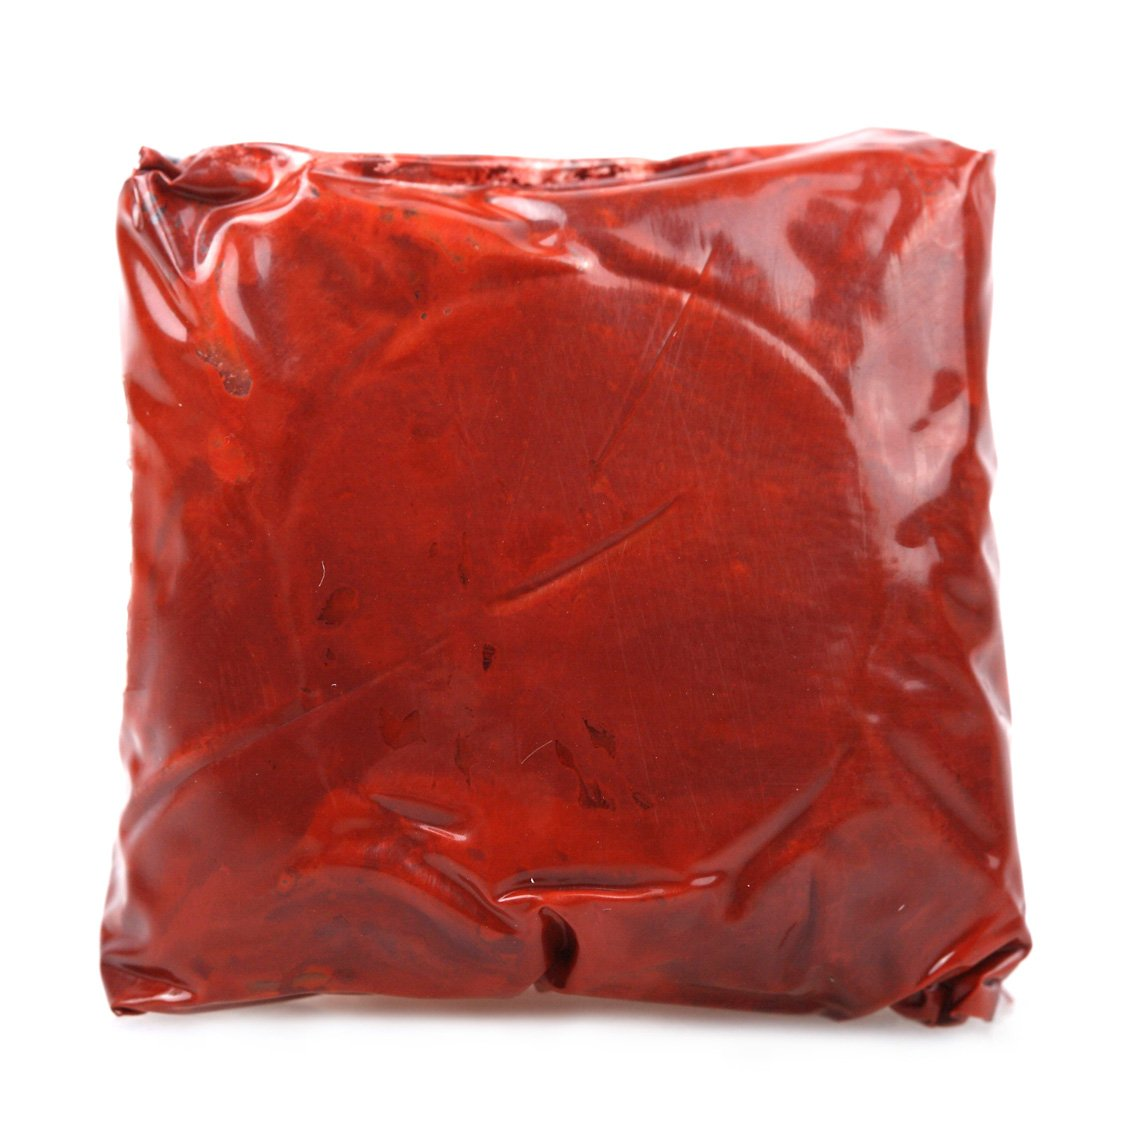 Special red Chinese seal paste in a traditional rare shade of red whith is a deep hue of red distinguishing it from standard red colored pastes.